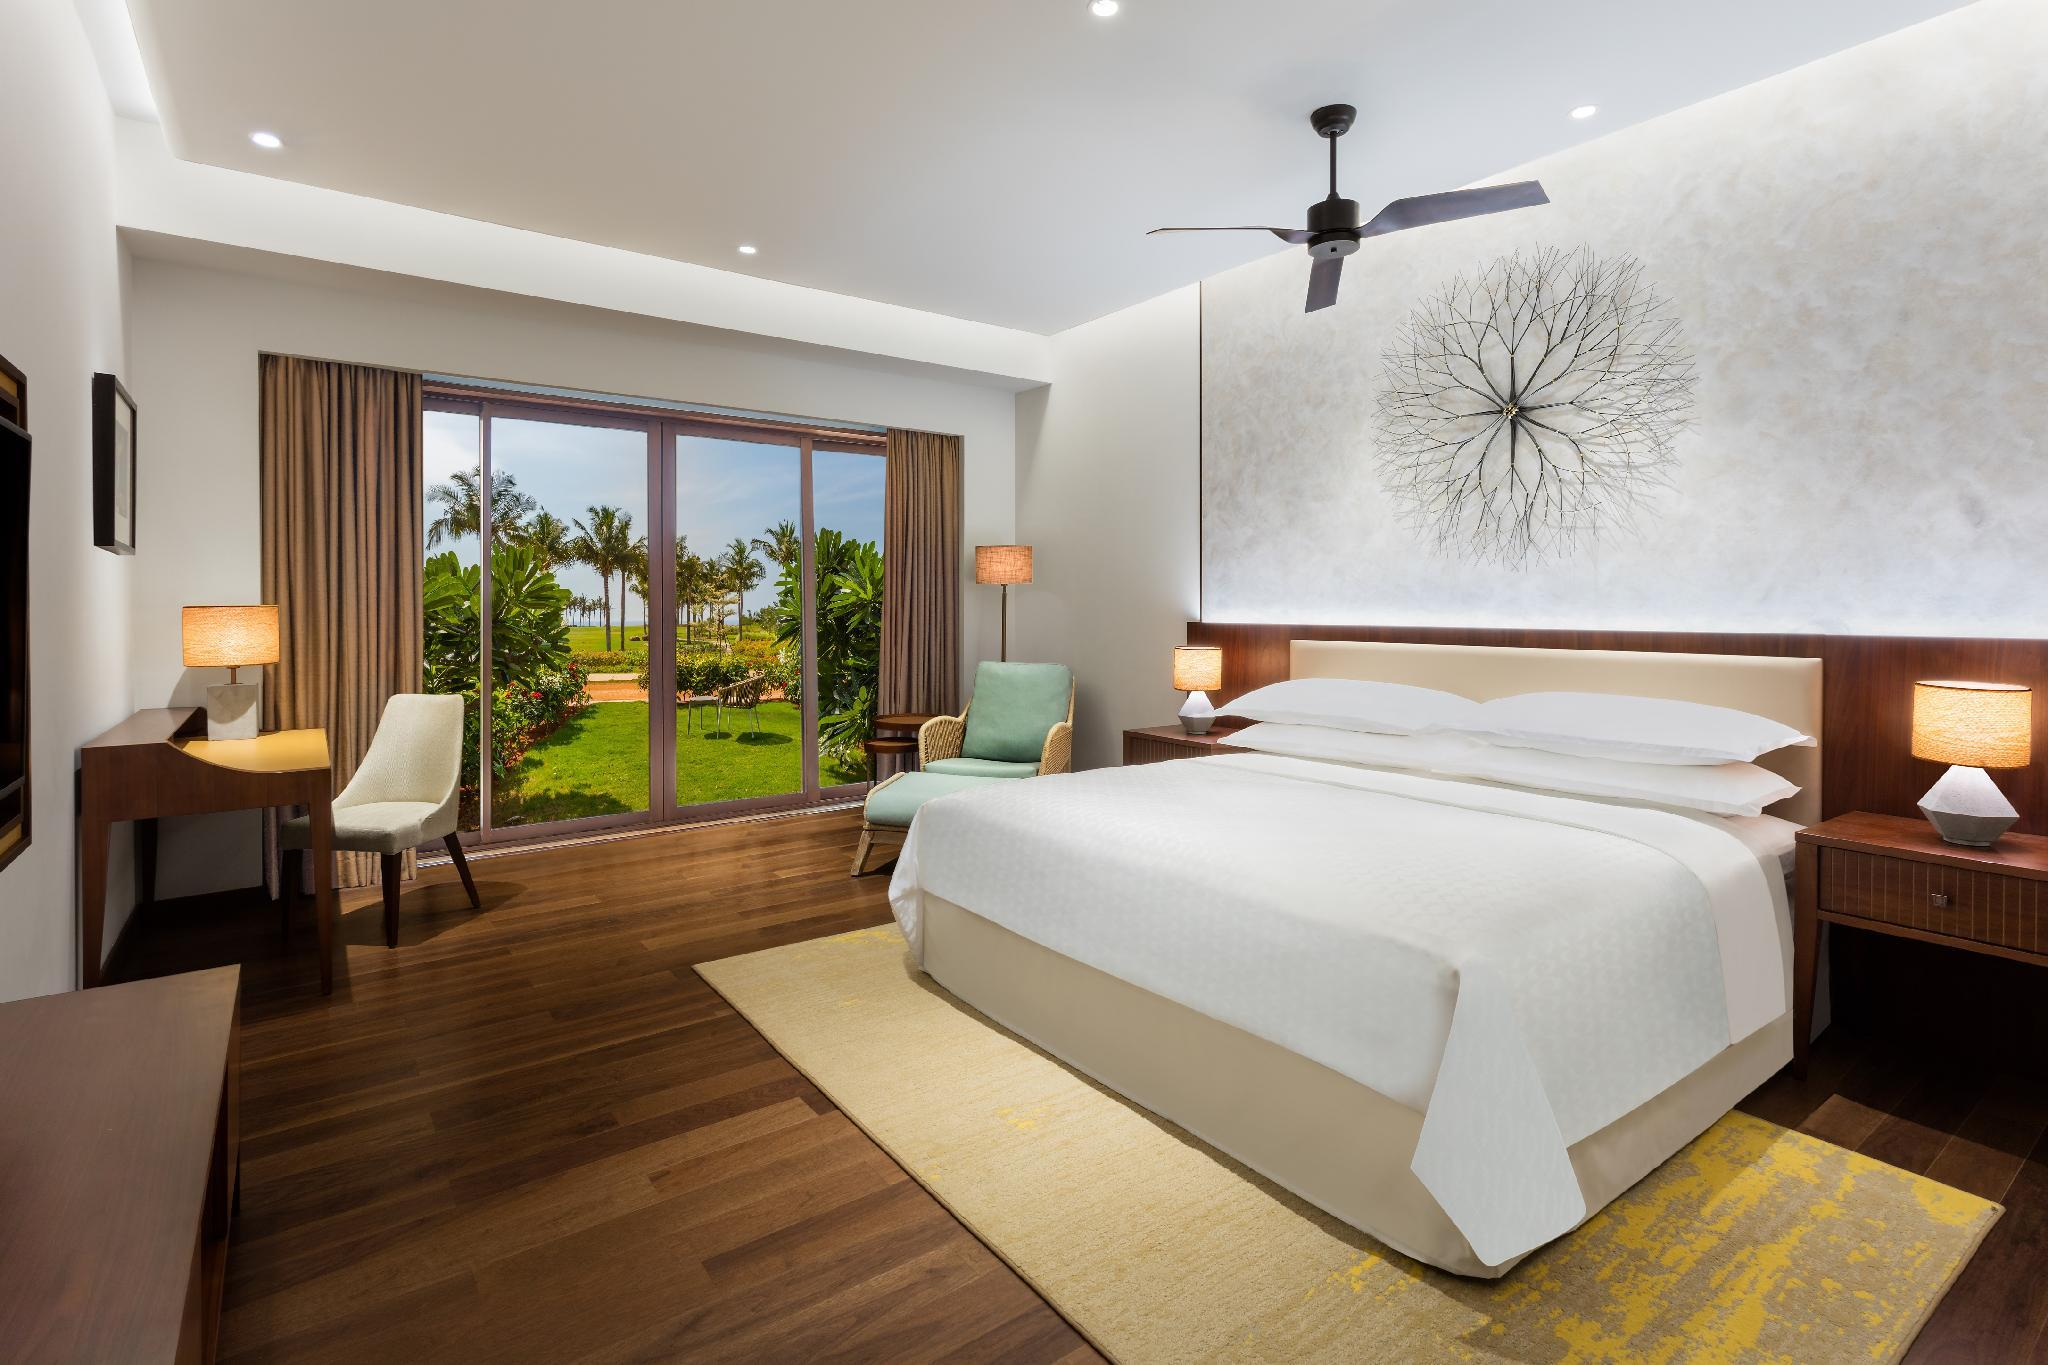 Sea View with Garden King, Guest room, 1 King, Atrium view